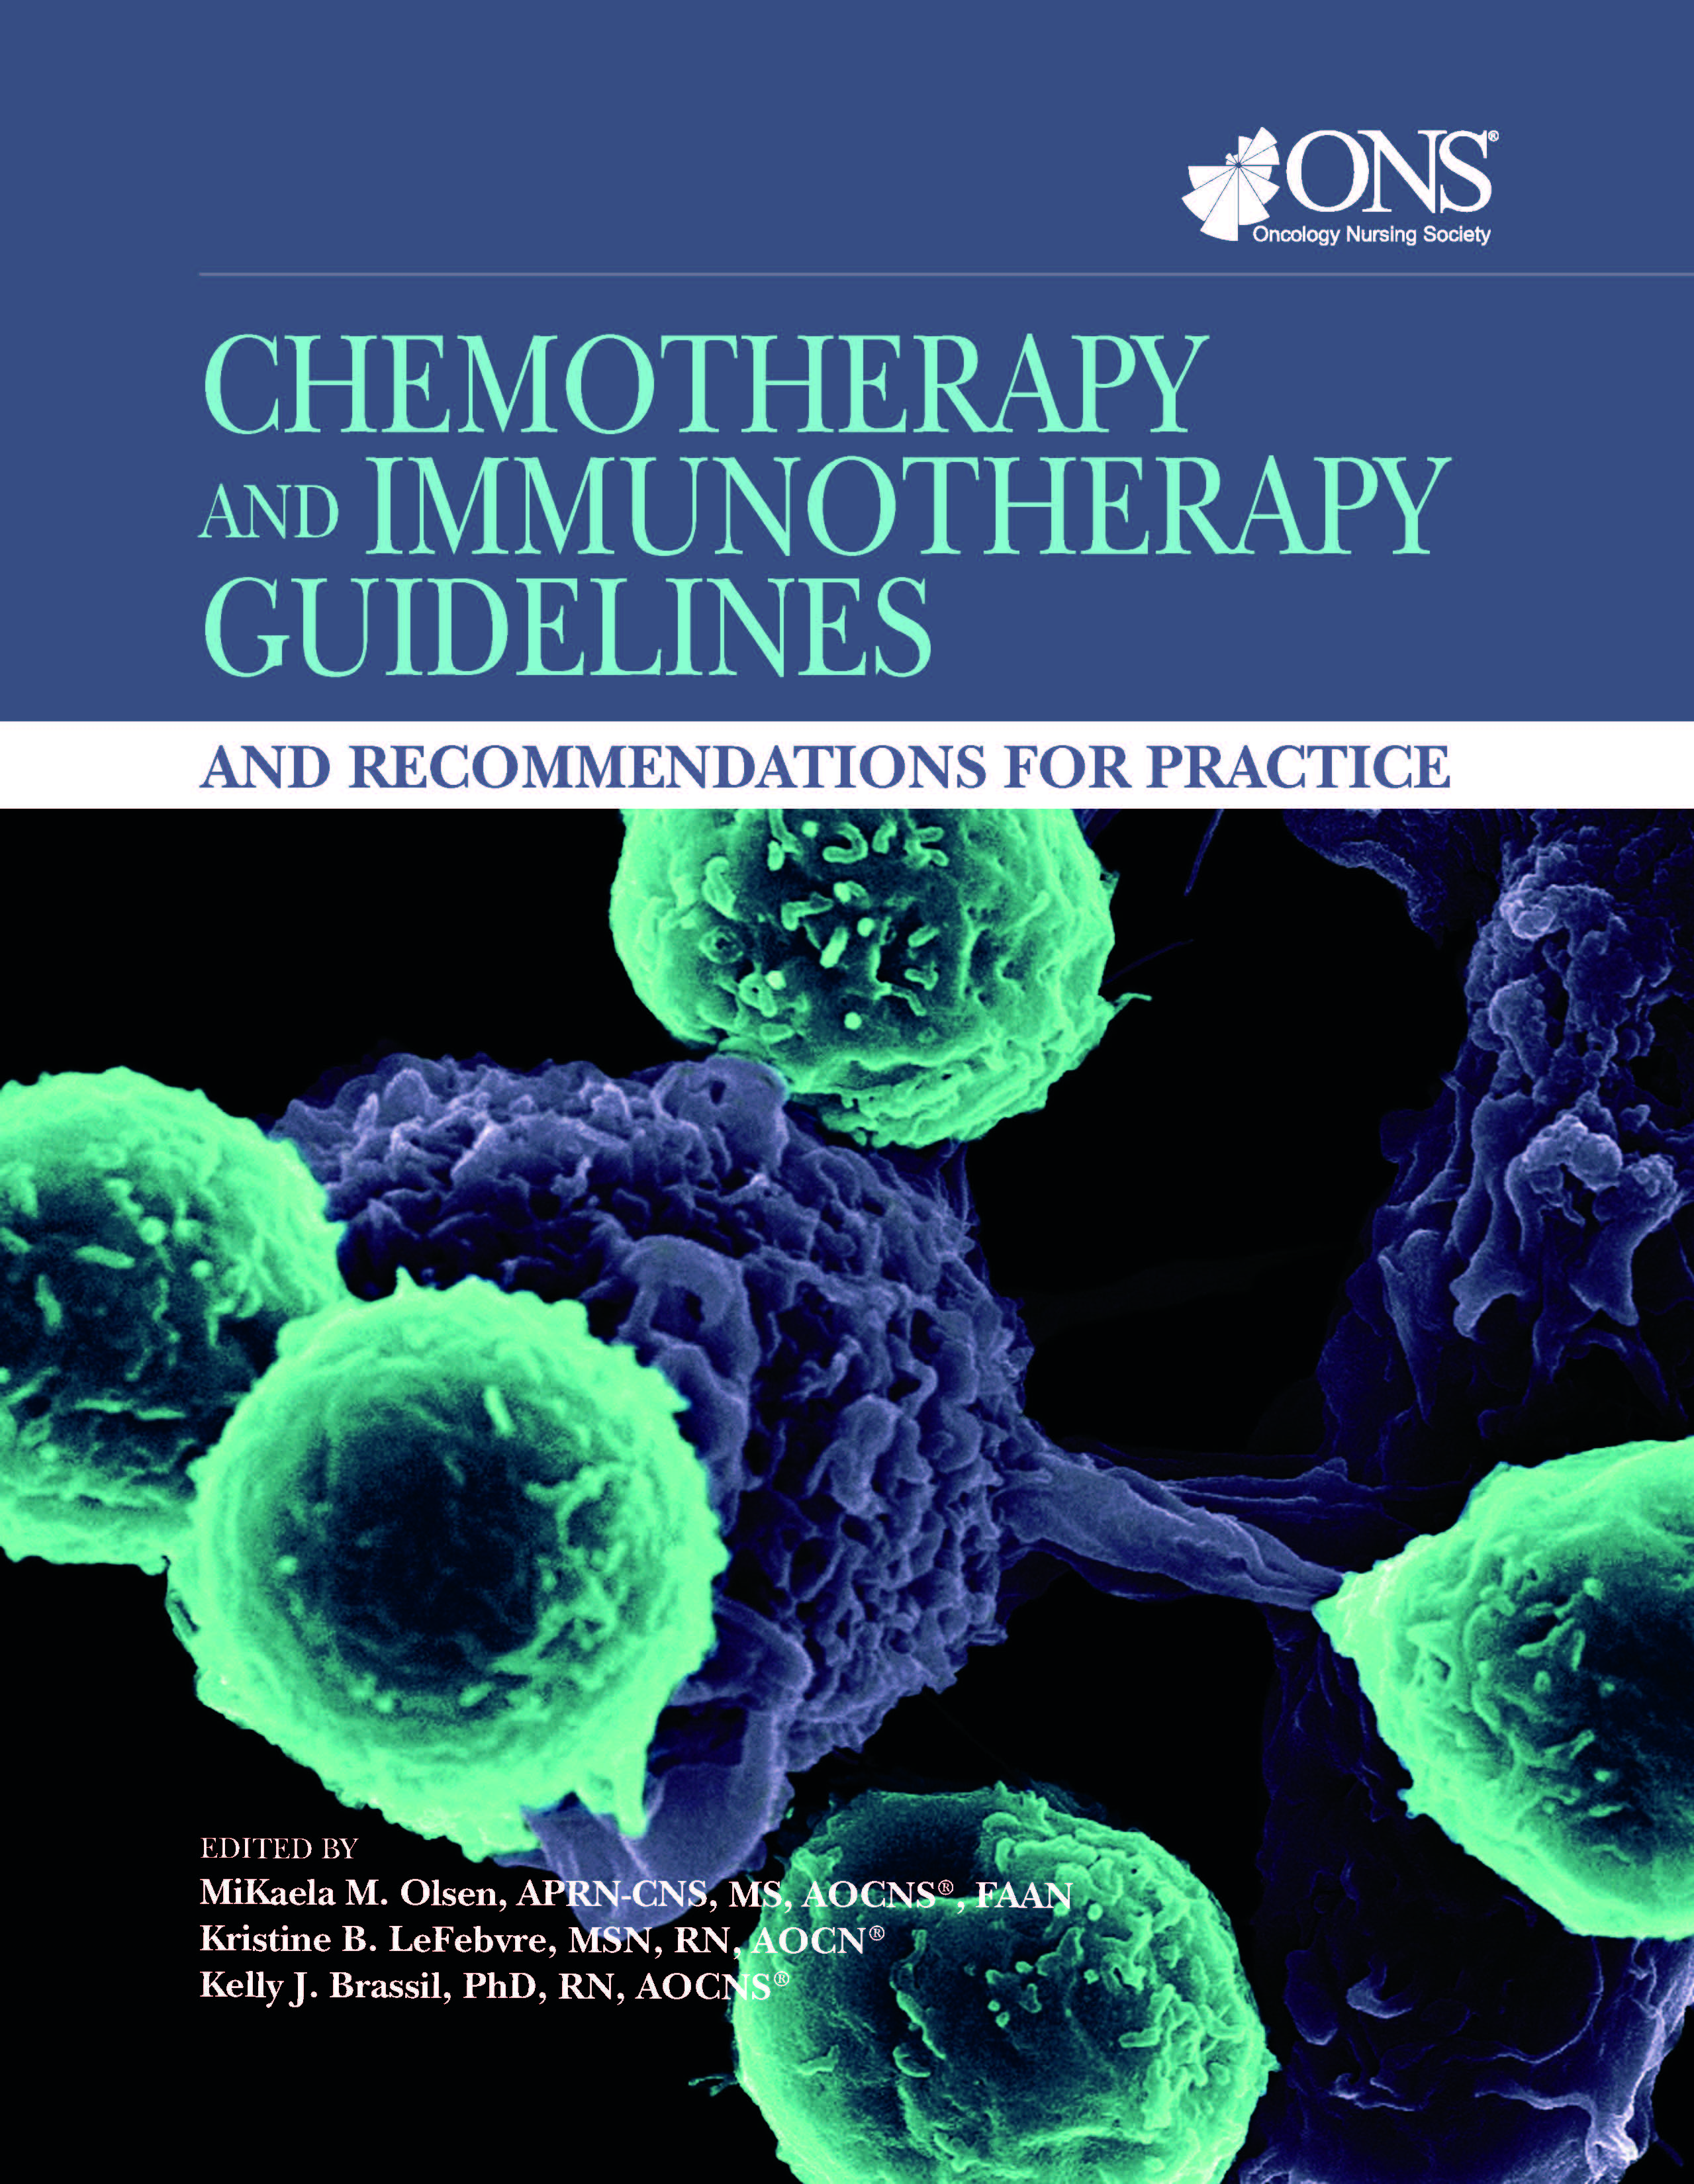 Chemotherapy and Immunotherapy Guidelines and